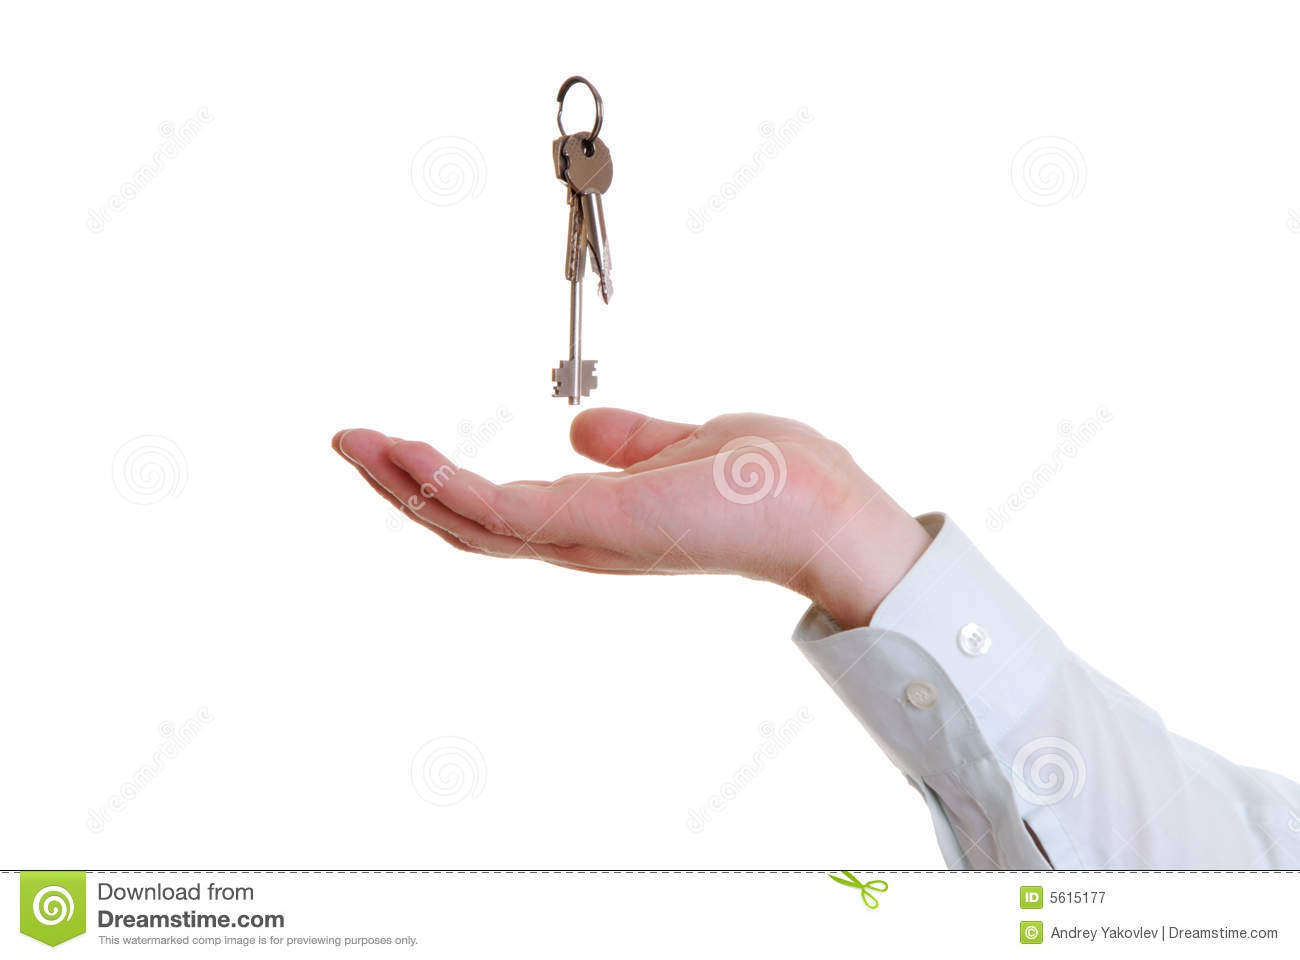 The hand that is catching the keys